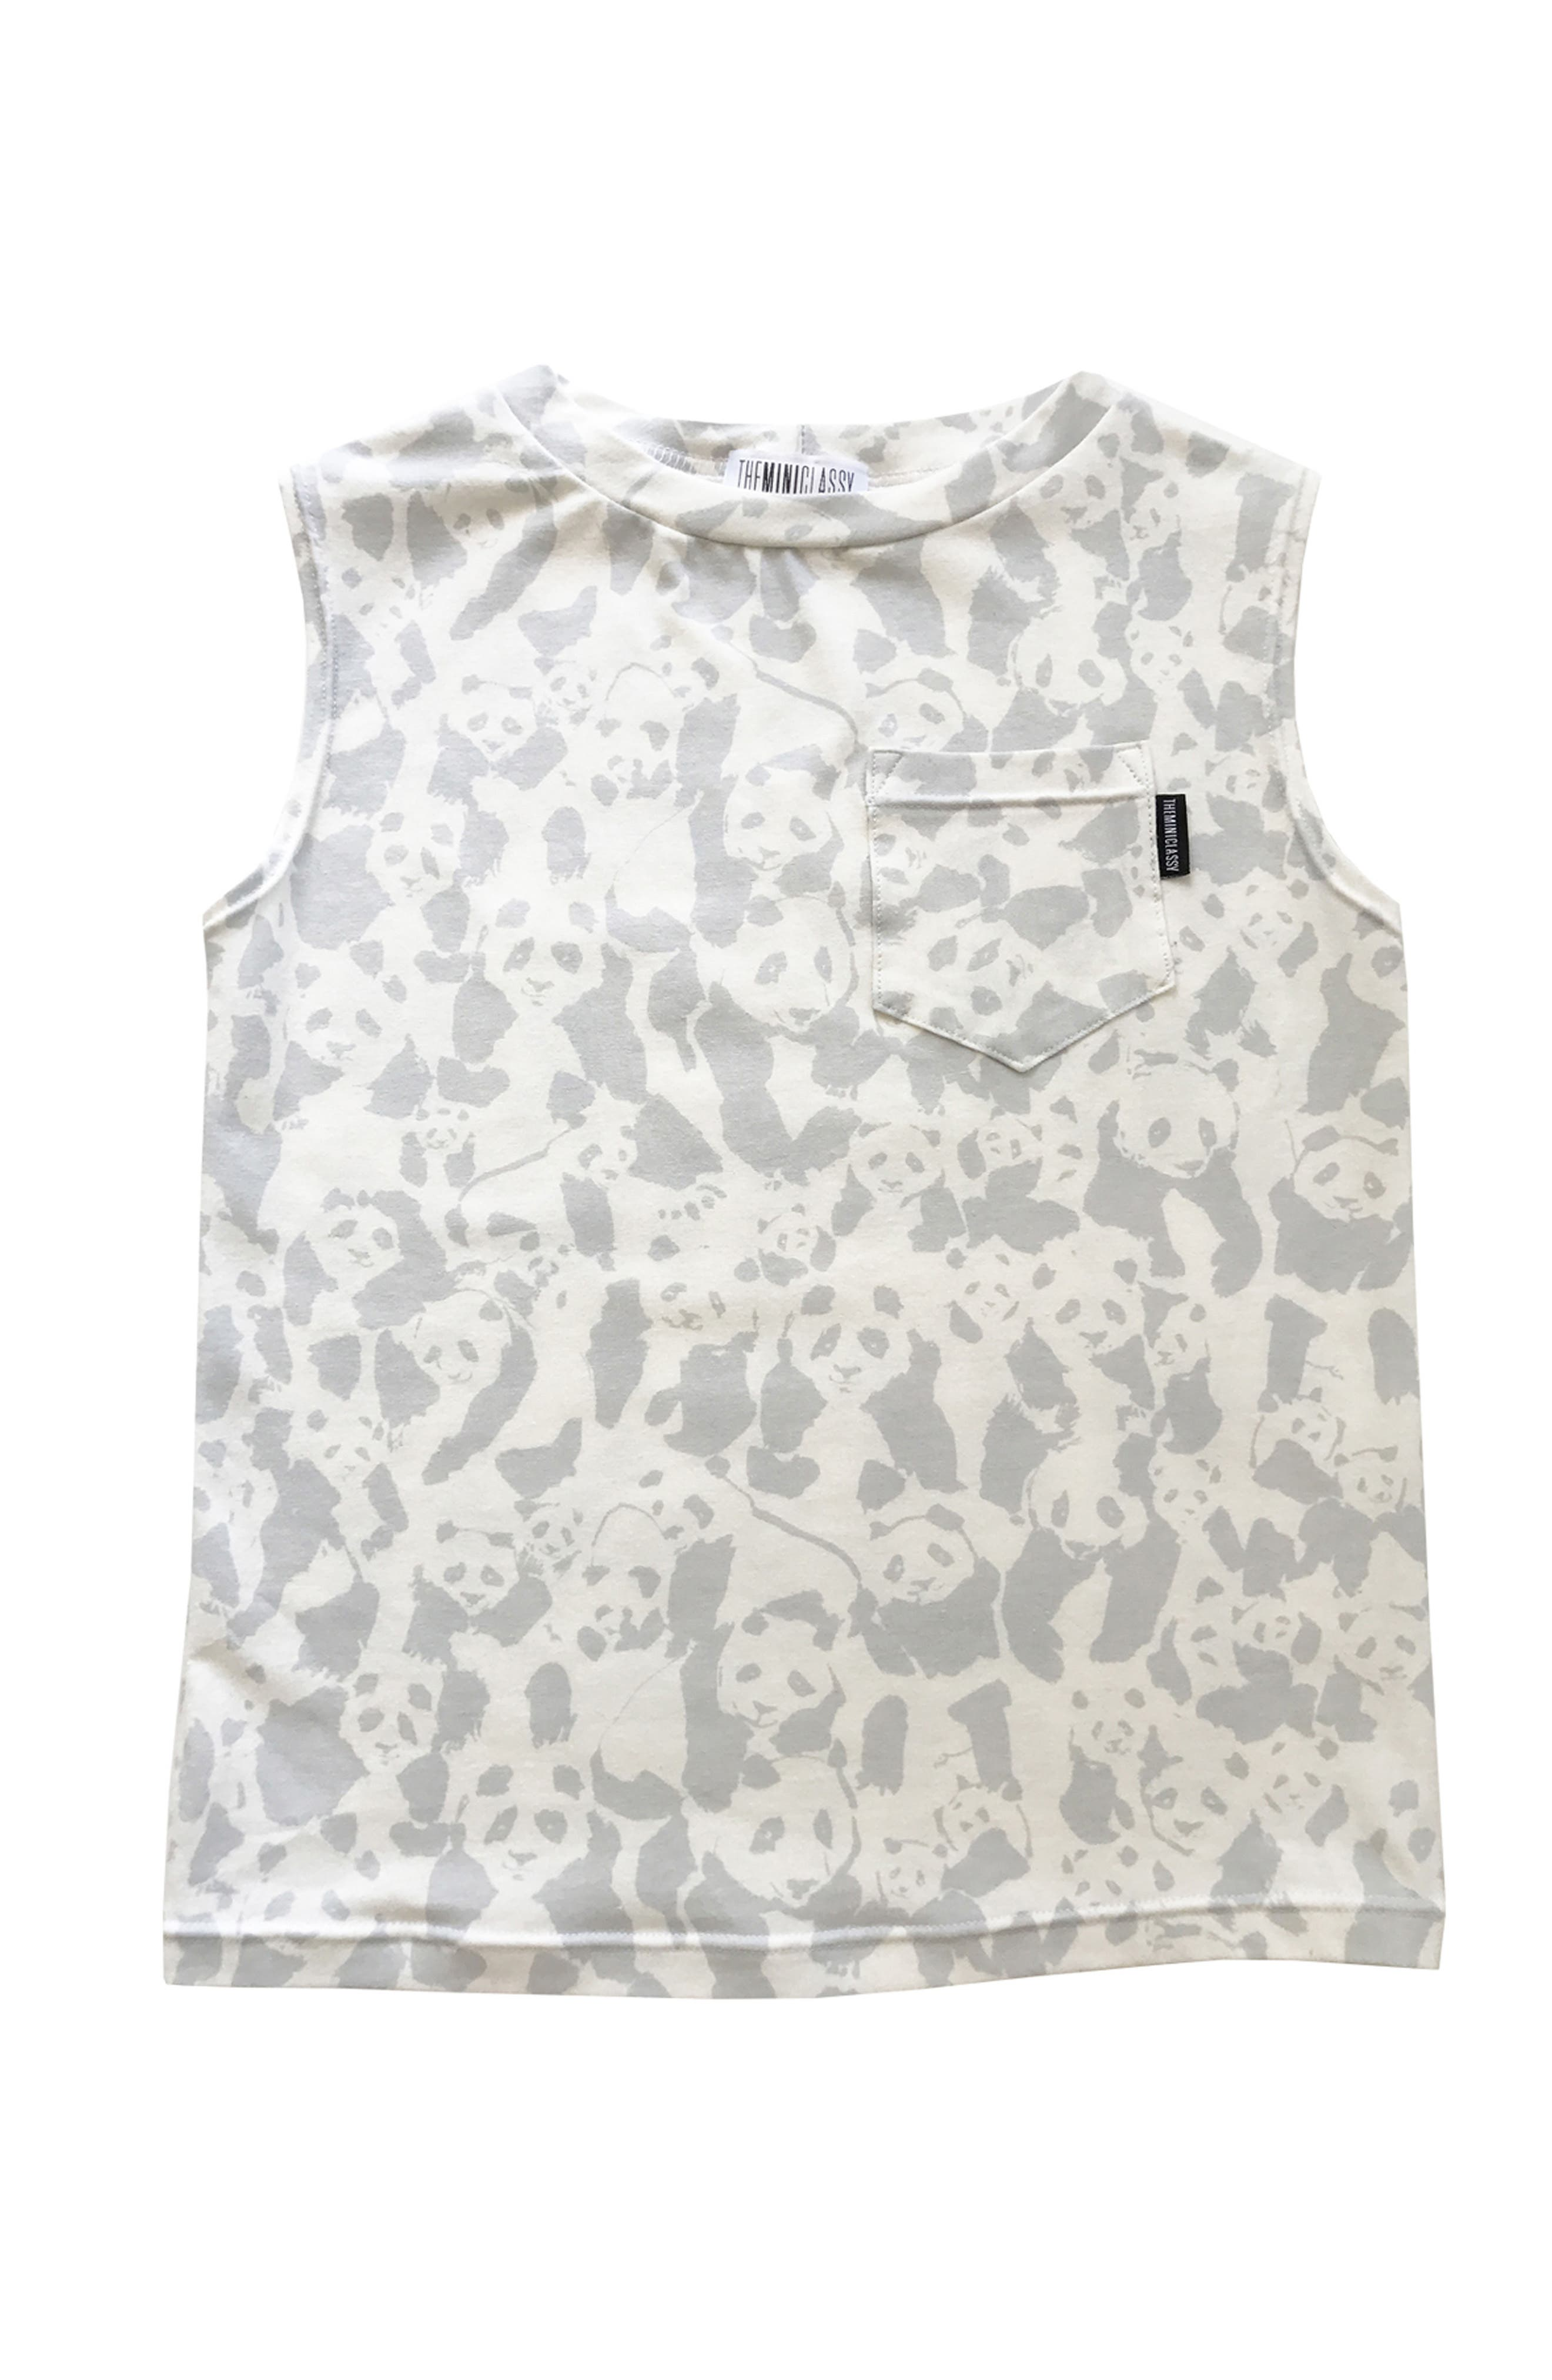 Main Image - theMINIclassy Panda Panda Muscle Shirt (Toddler Boys & Little Boys)